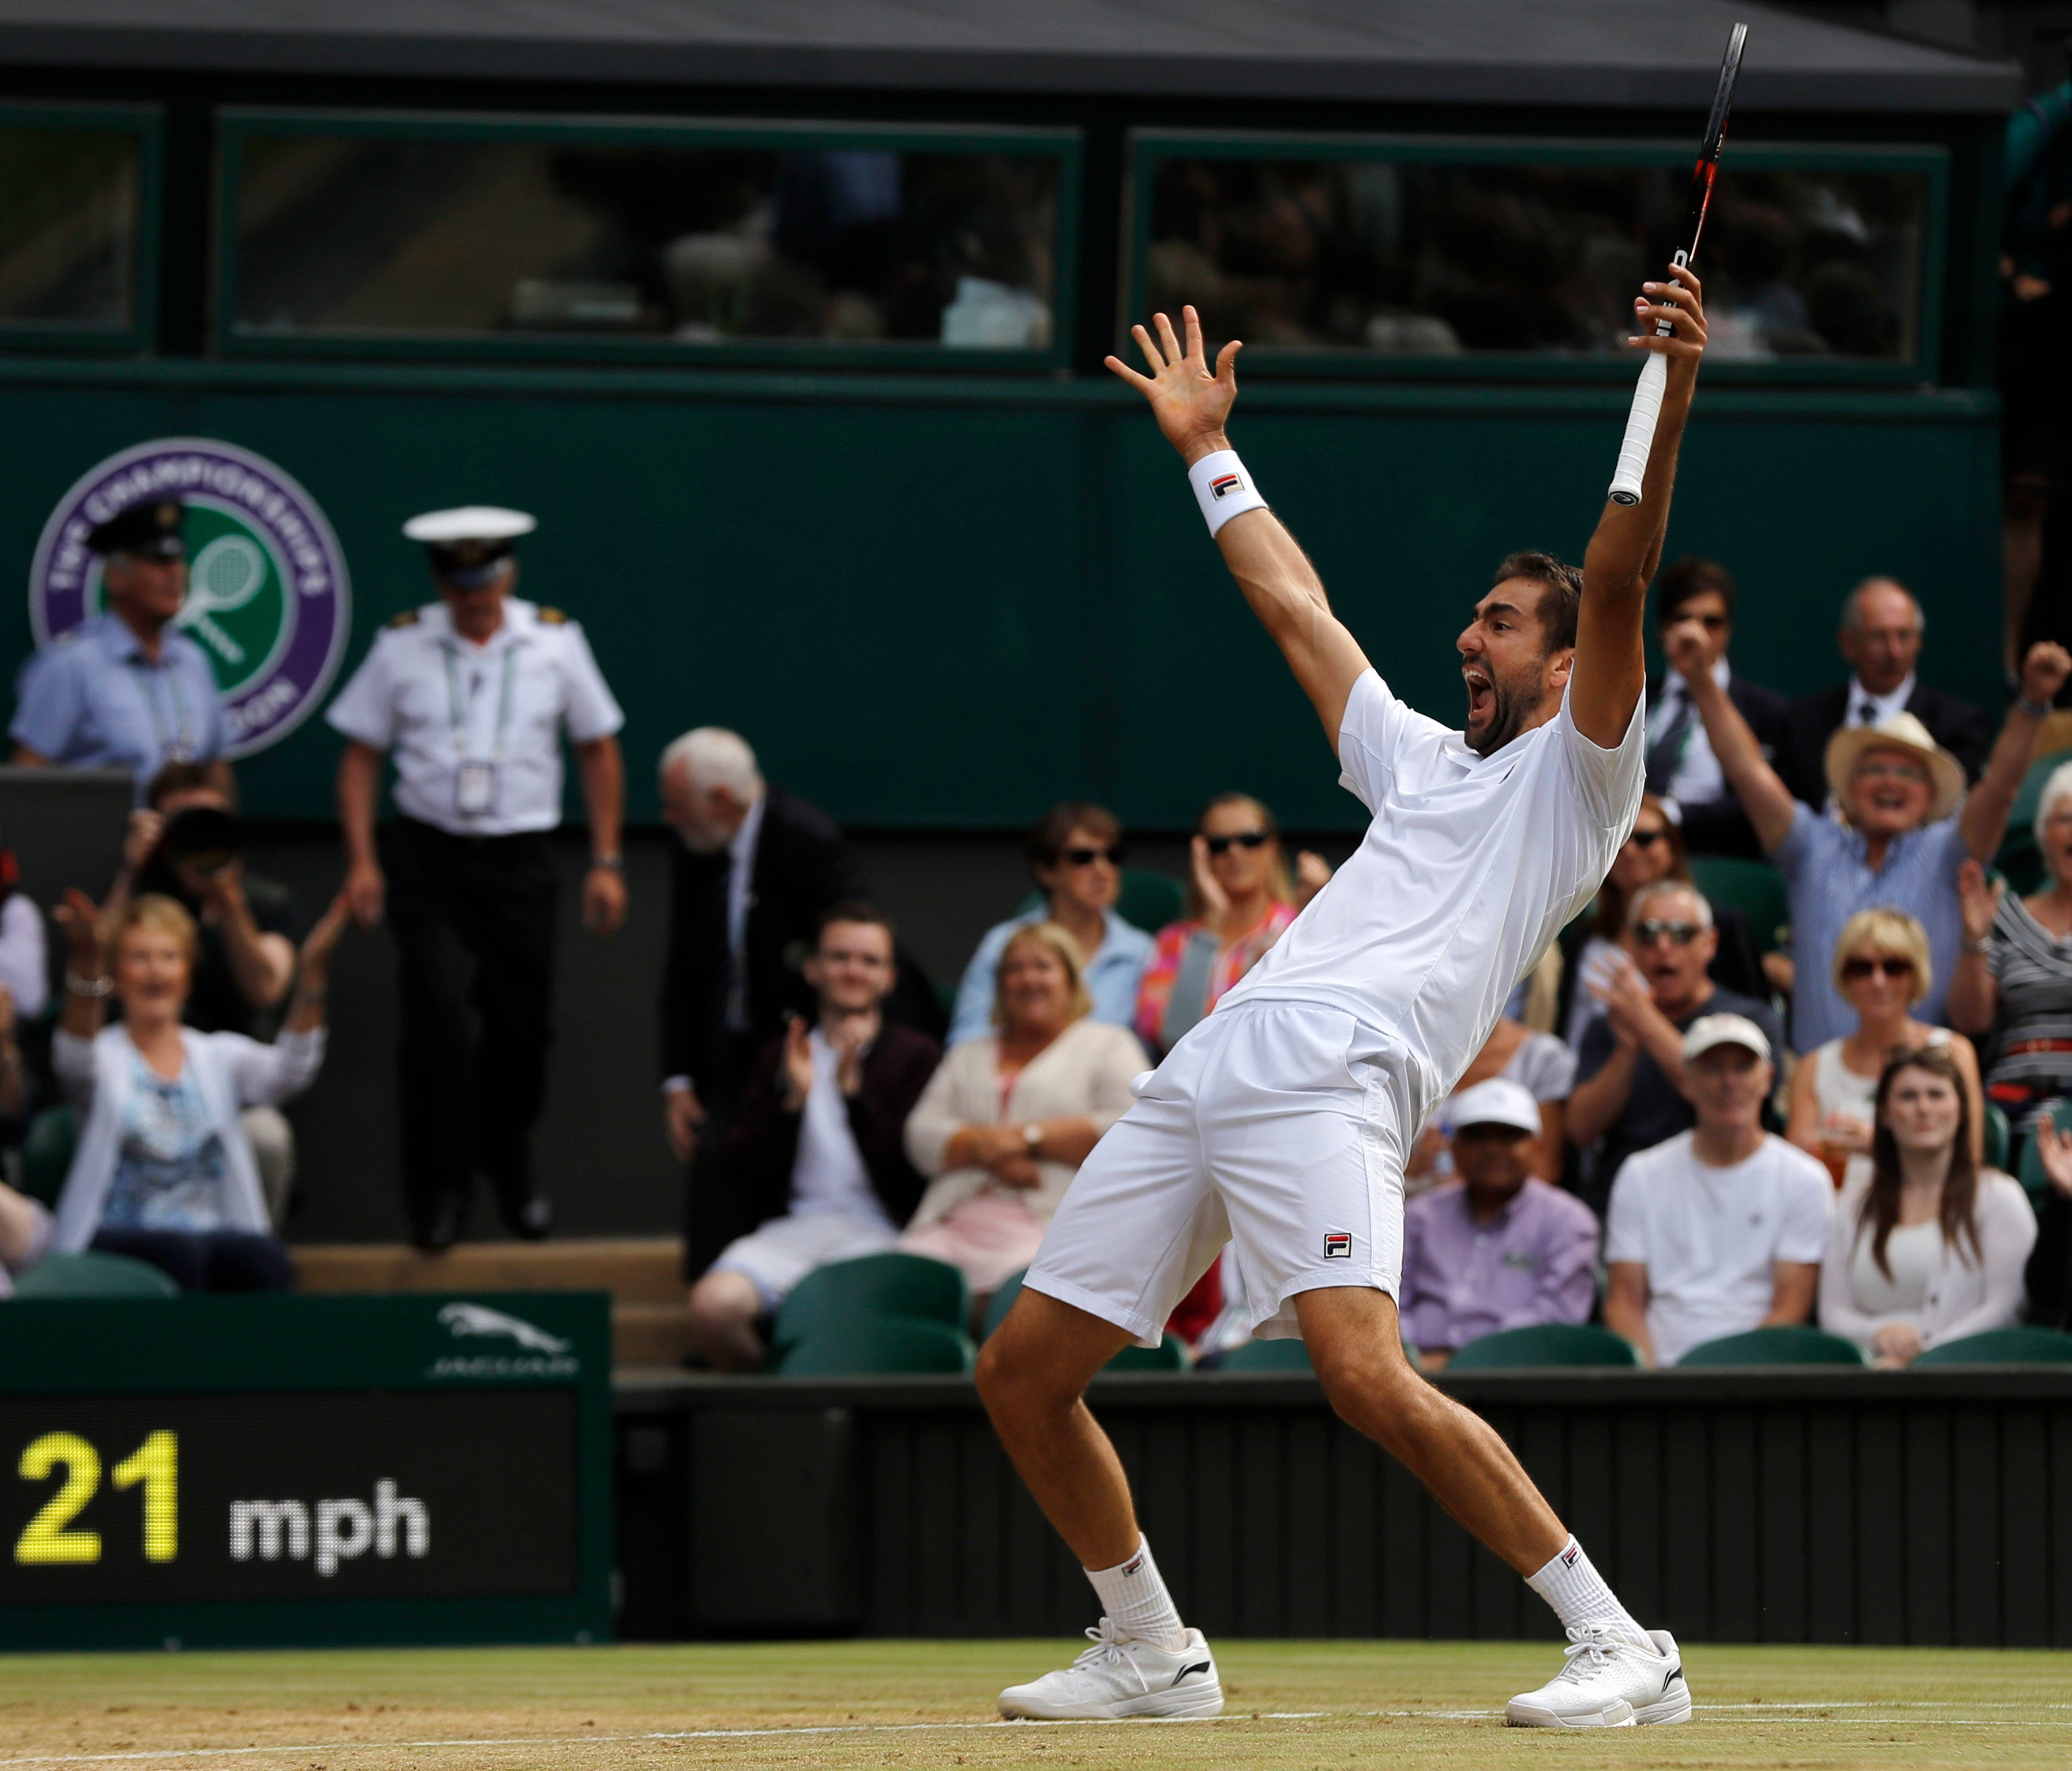 Croatia's Marin Cilic celebrates after beating Sam Querrey of the United States at the end of their semifinal match on day eleven at the Wimbledon Tennis Championships on July 14.